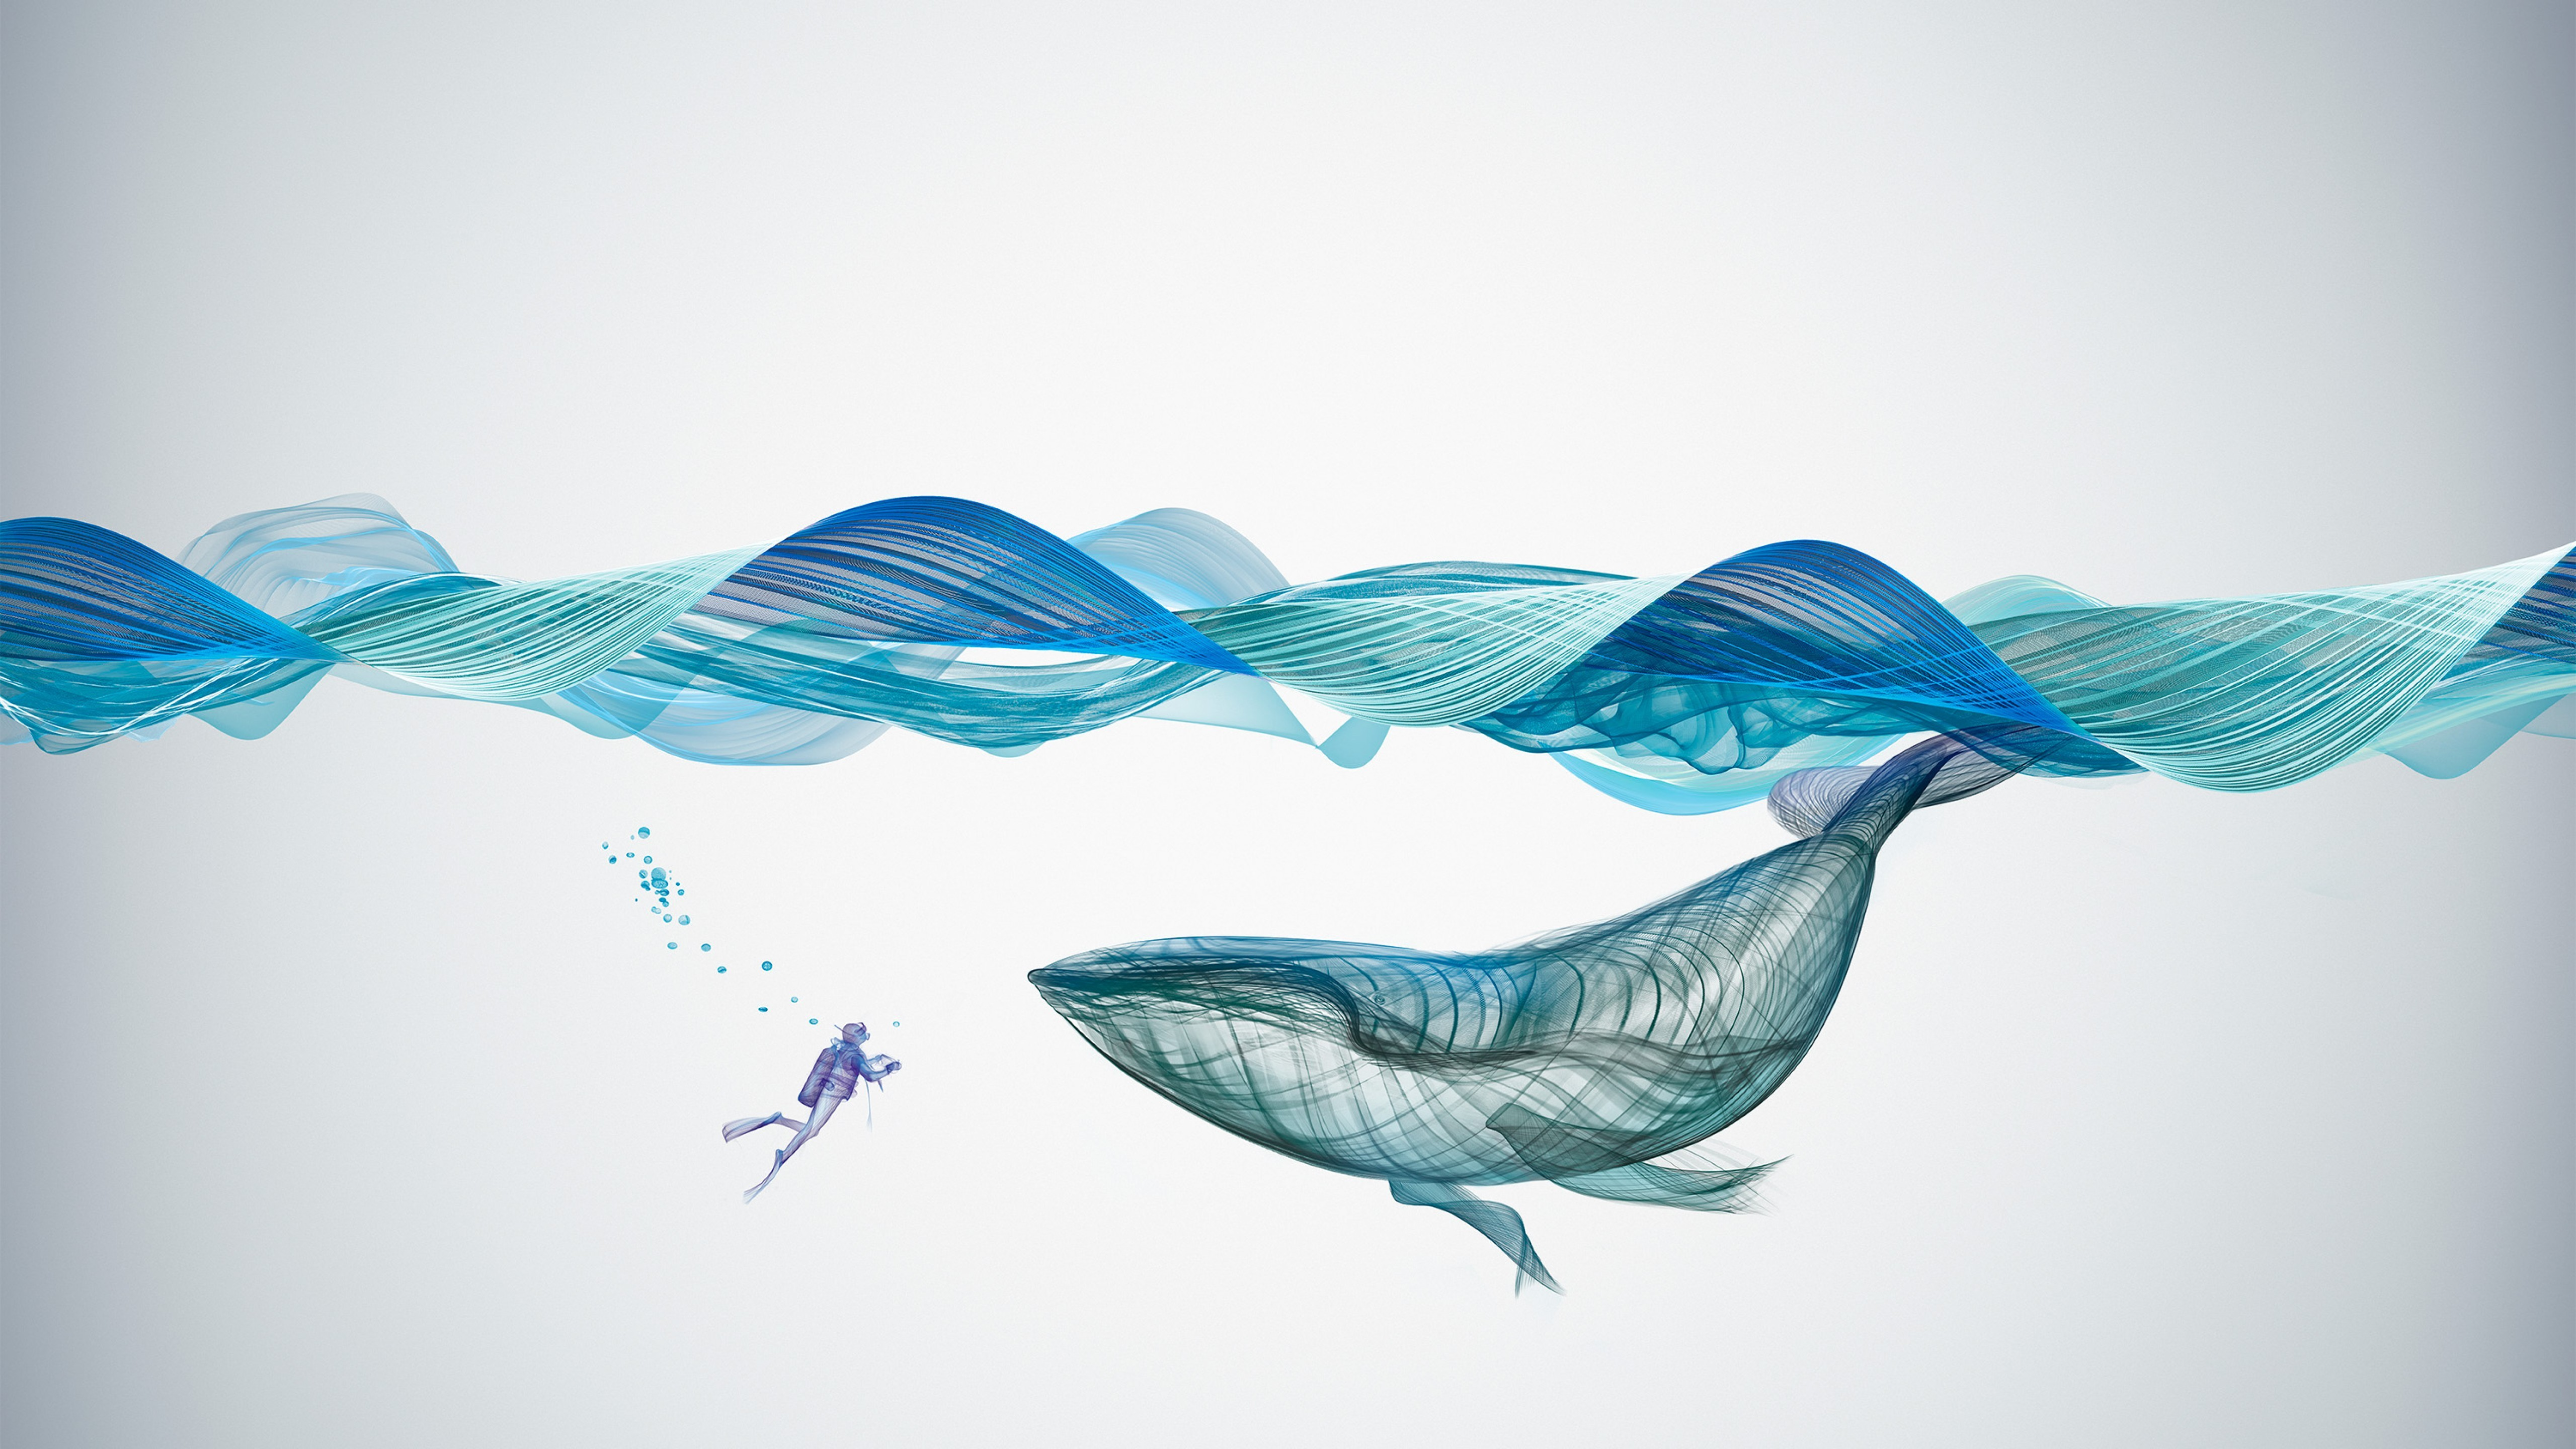 3d Graphic Wallpaper Hd Wallpaper Whale Waves Underwater Artwork 4k Abstract